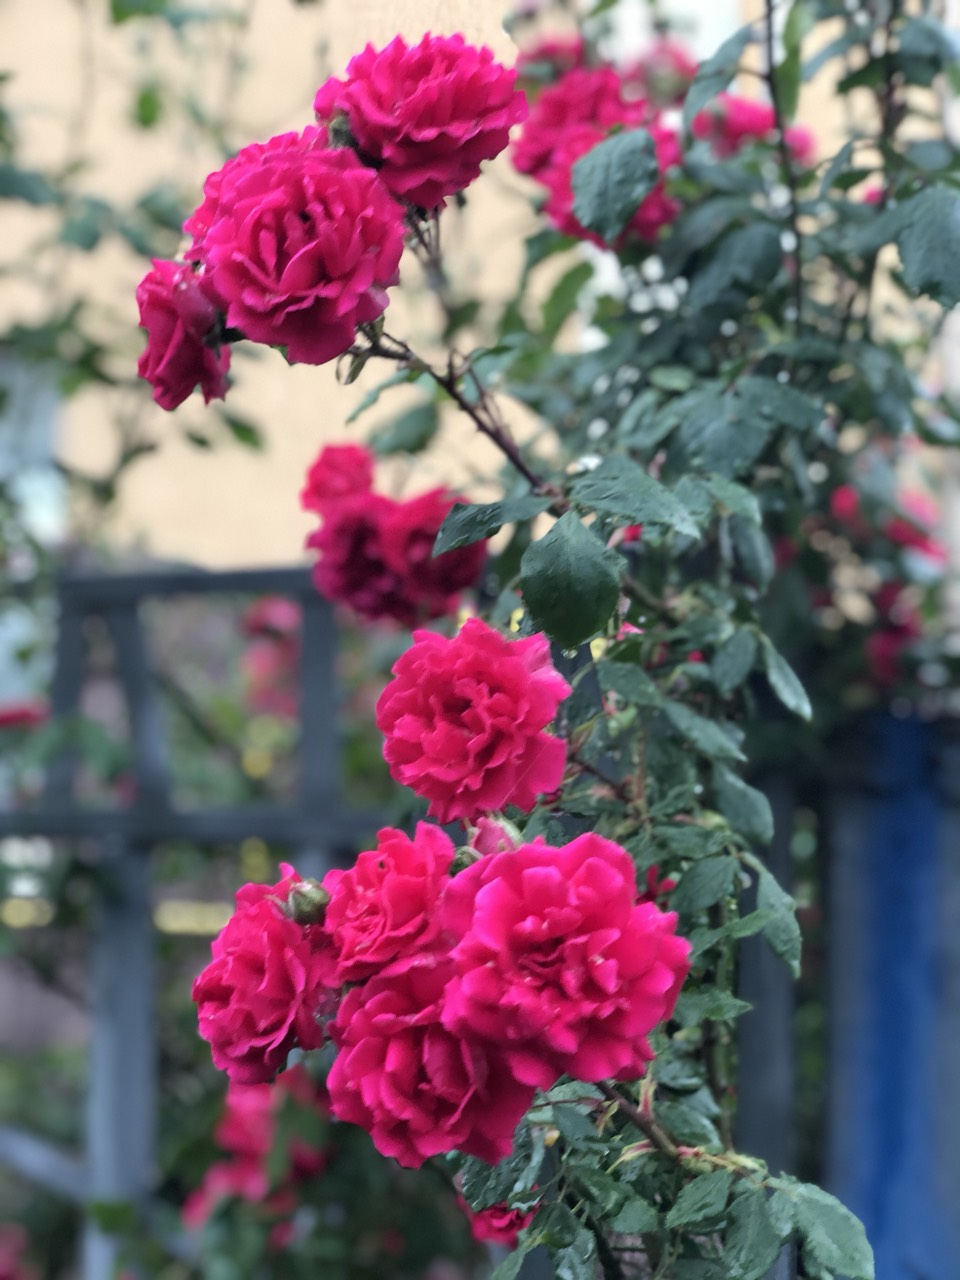 What to do with roses in winter